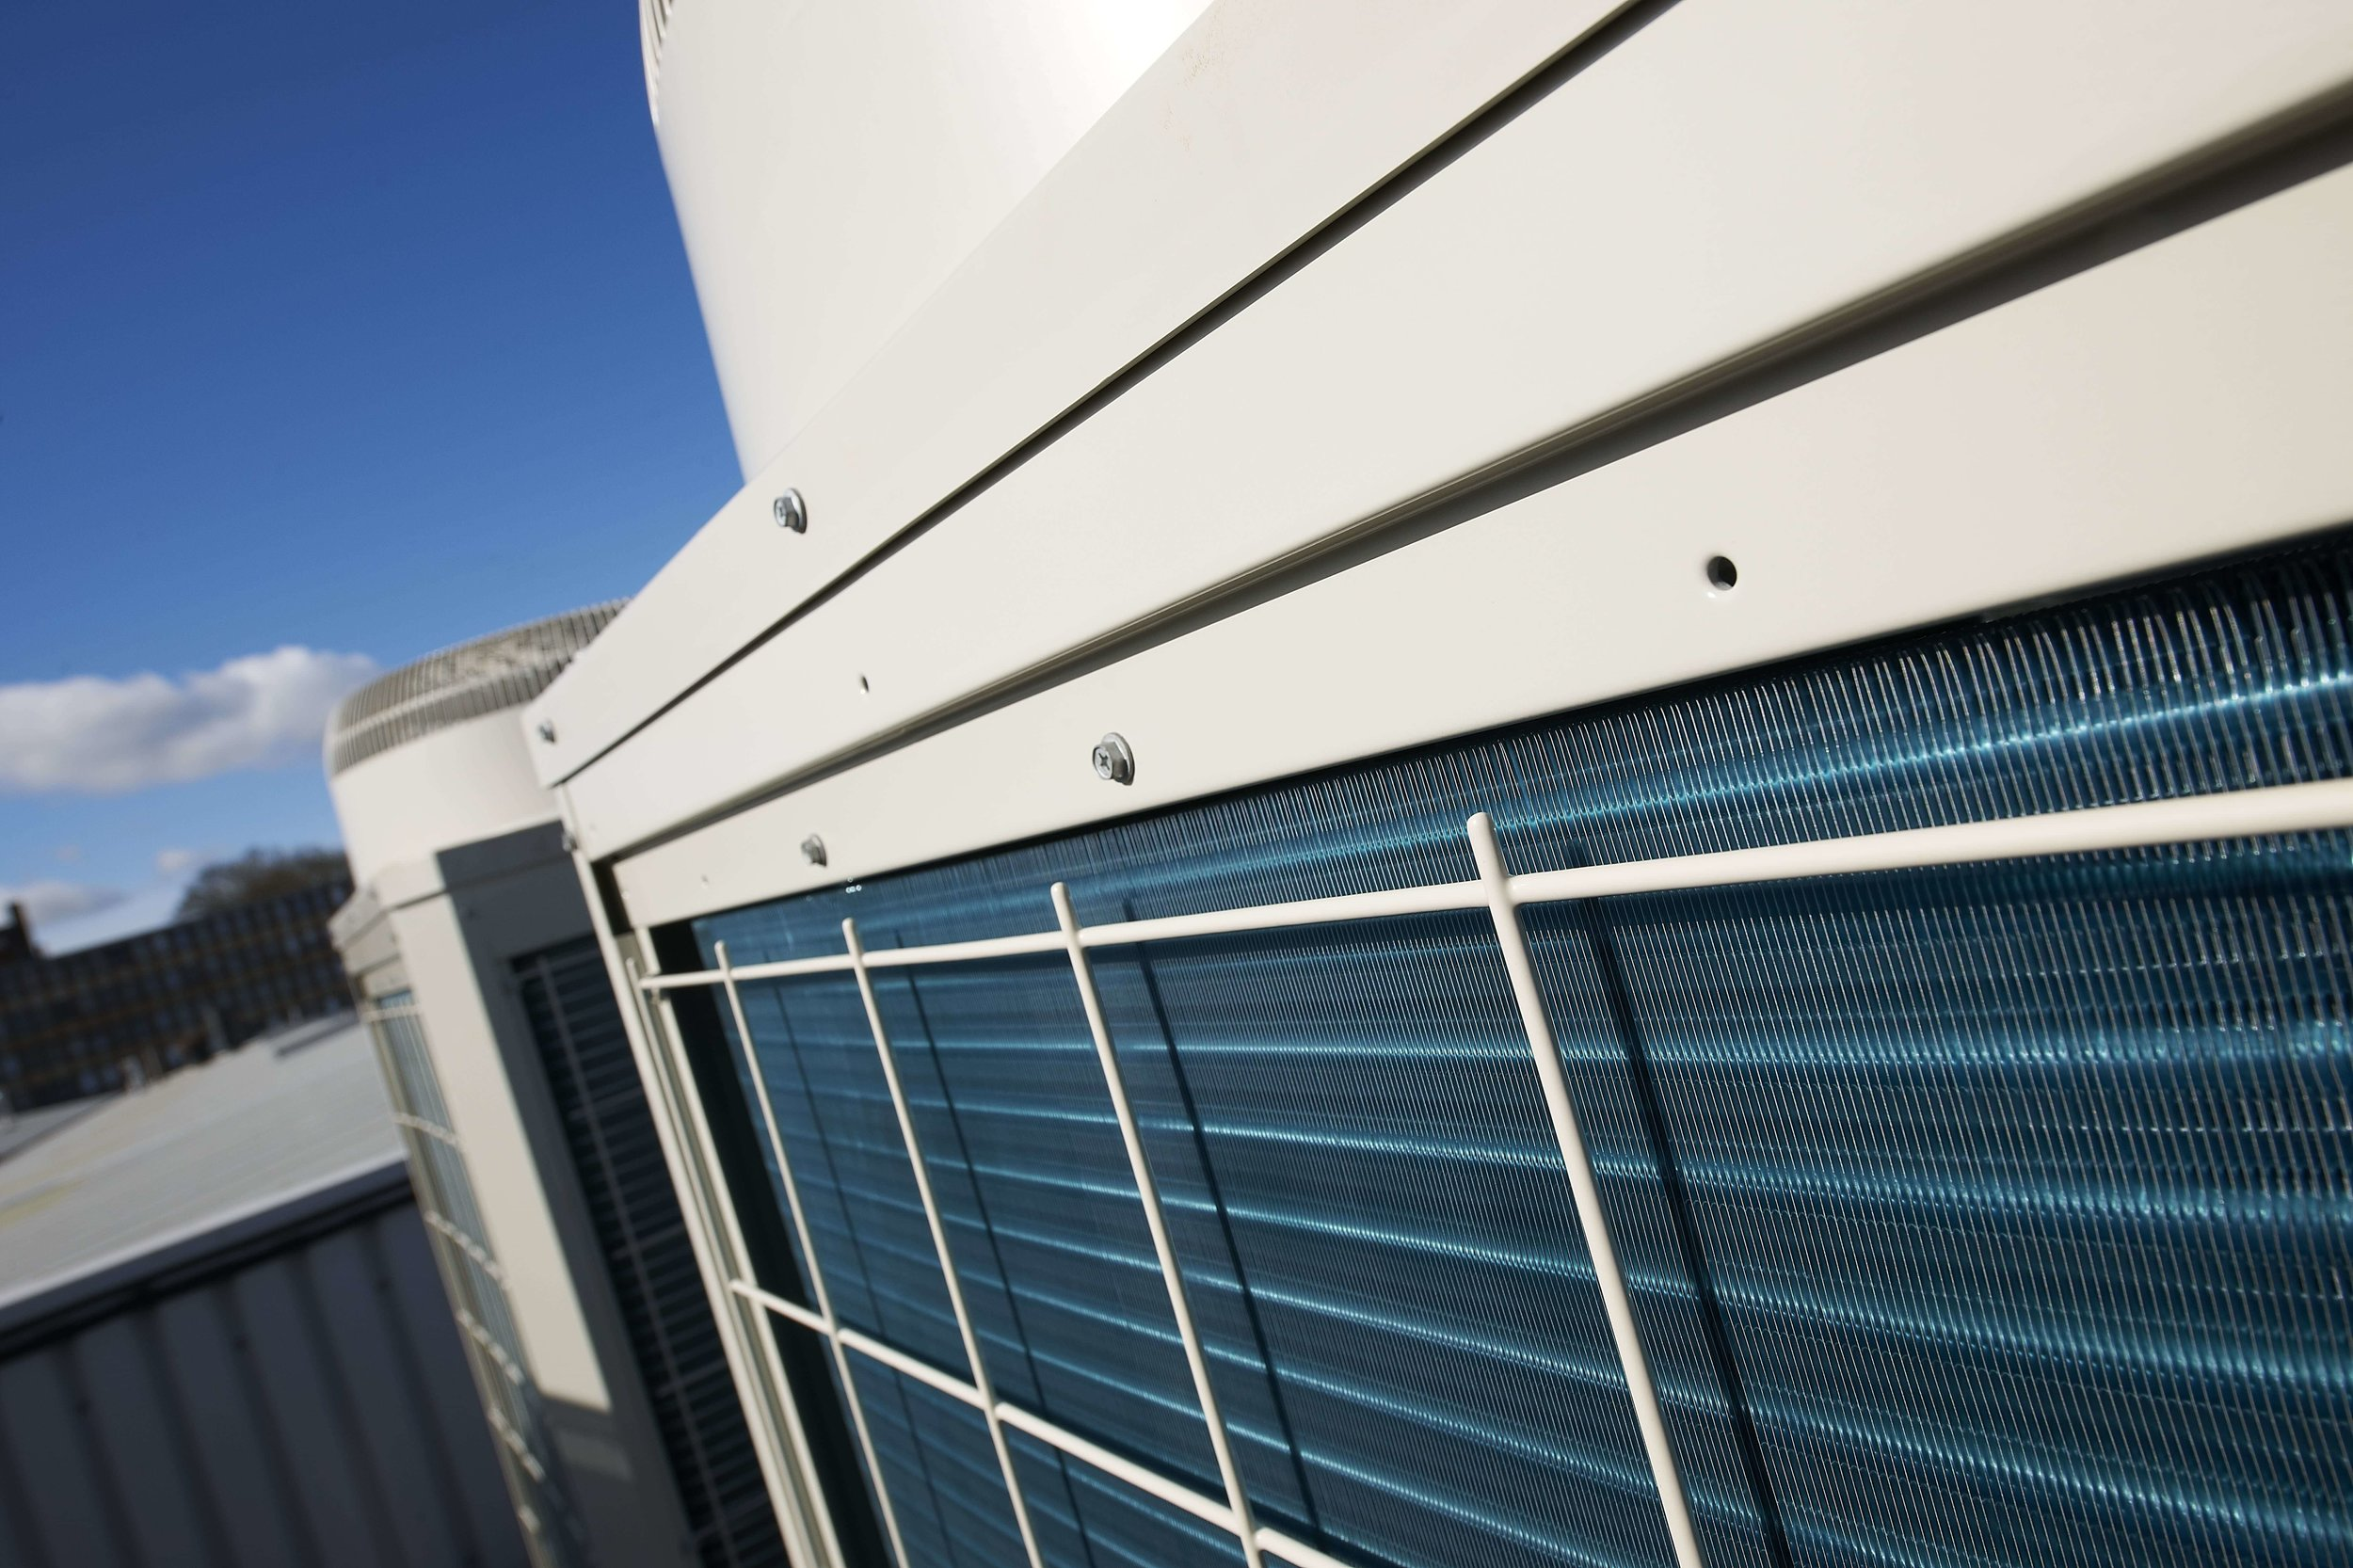 Atlas Copco 361 Degrees Air Conditioning Case Study 04.jpg